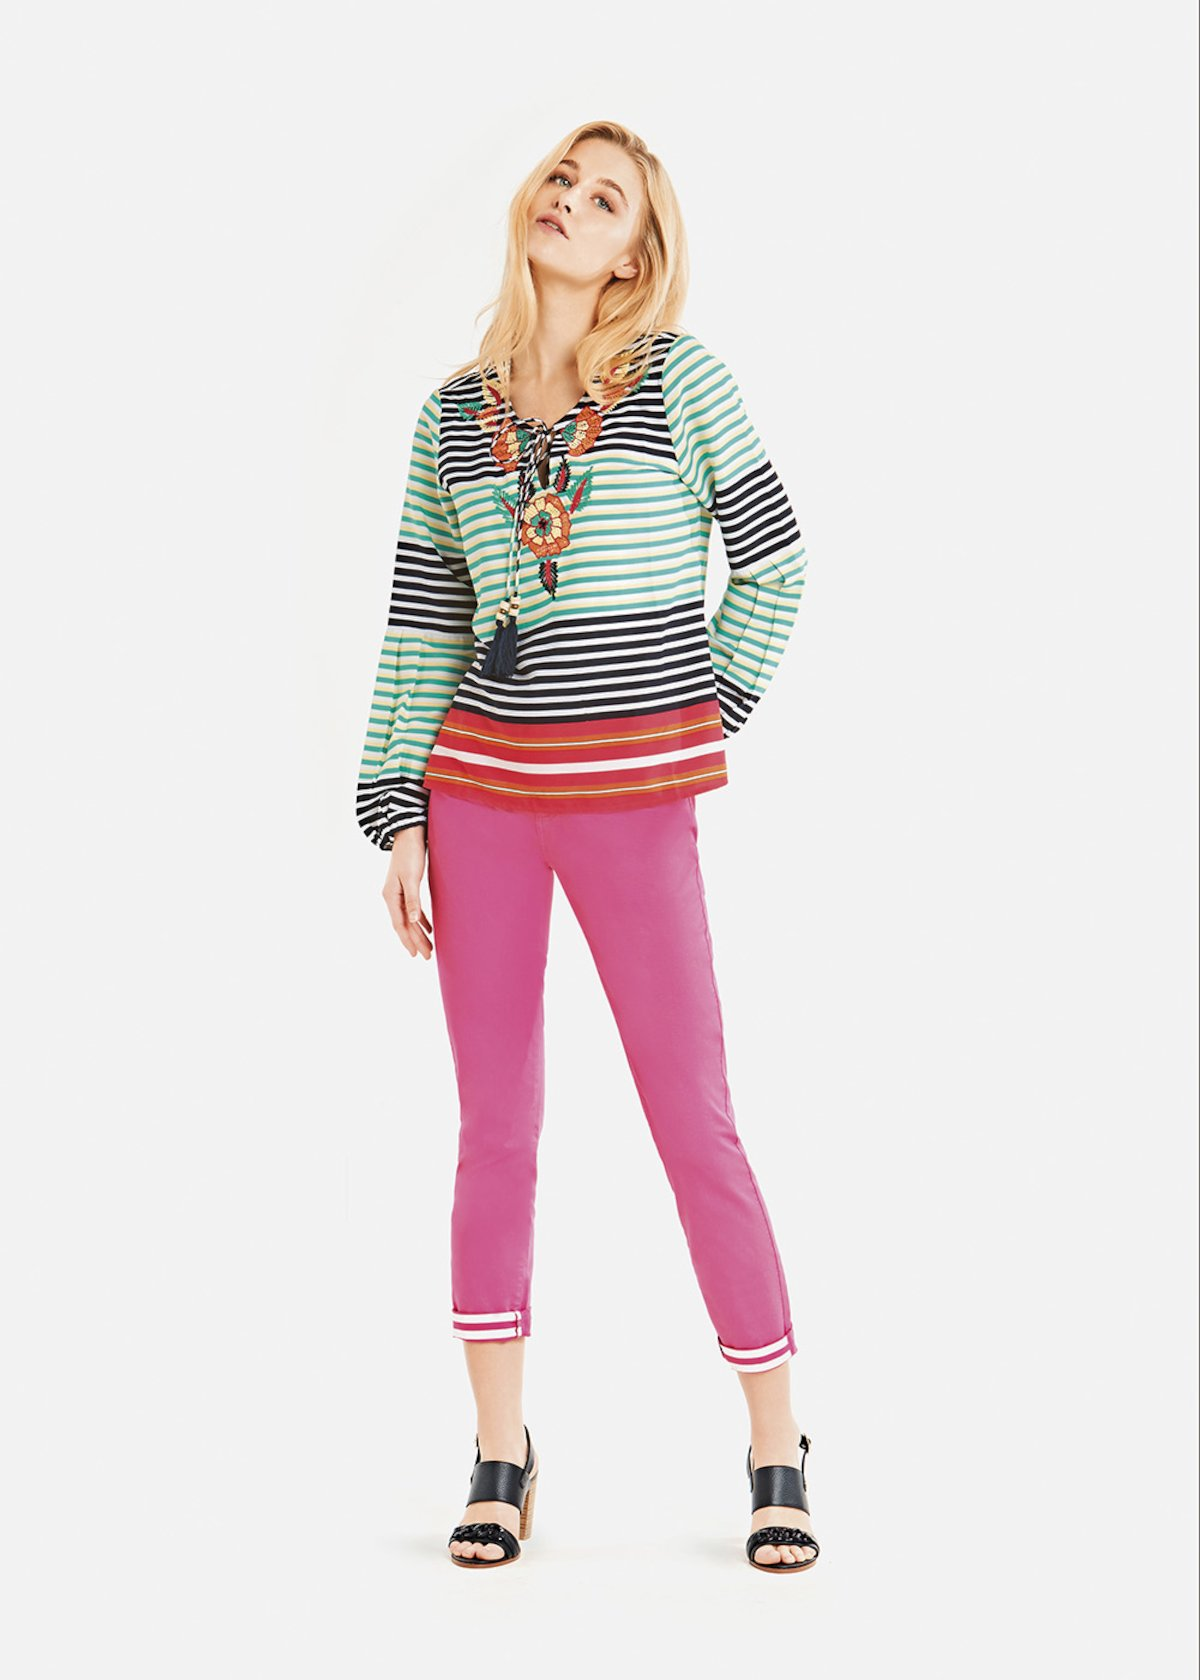 Katty blouse with multicolor stripes and bow detail